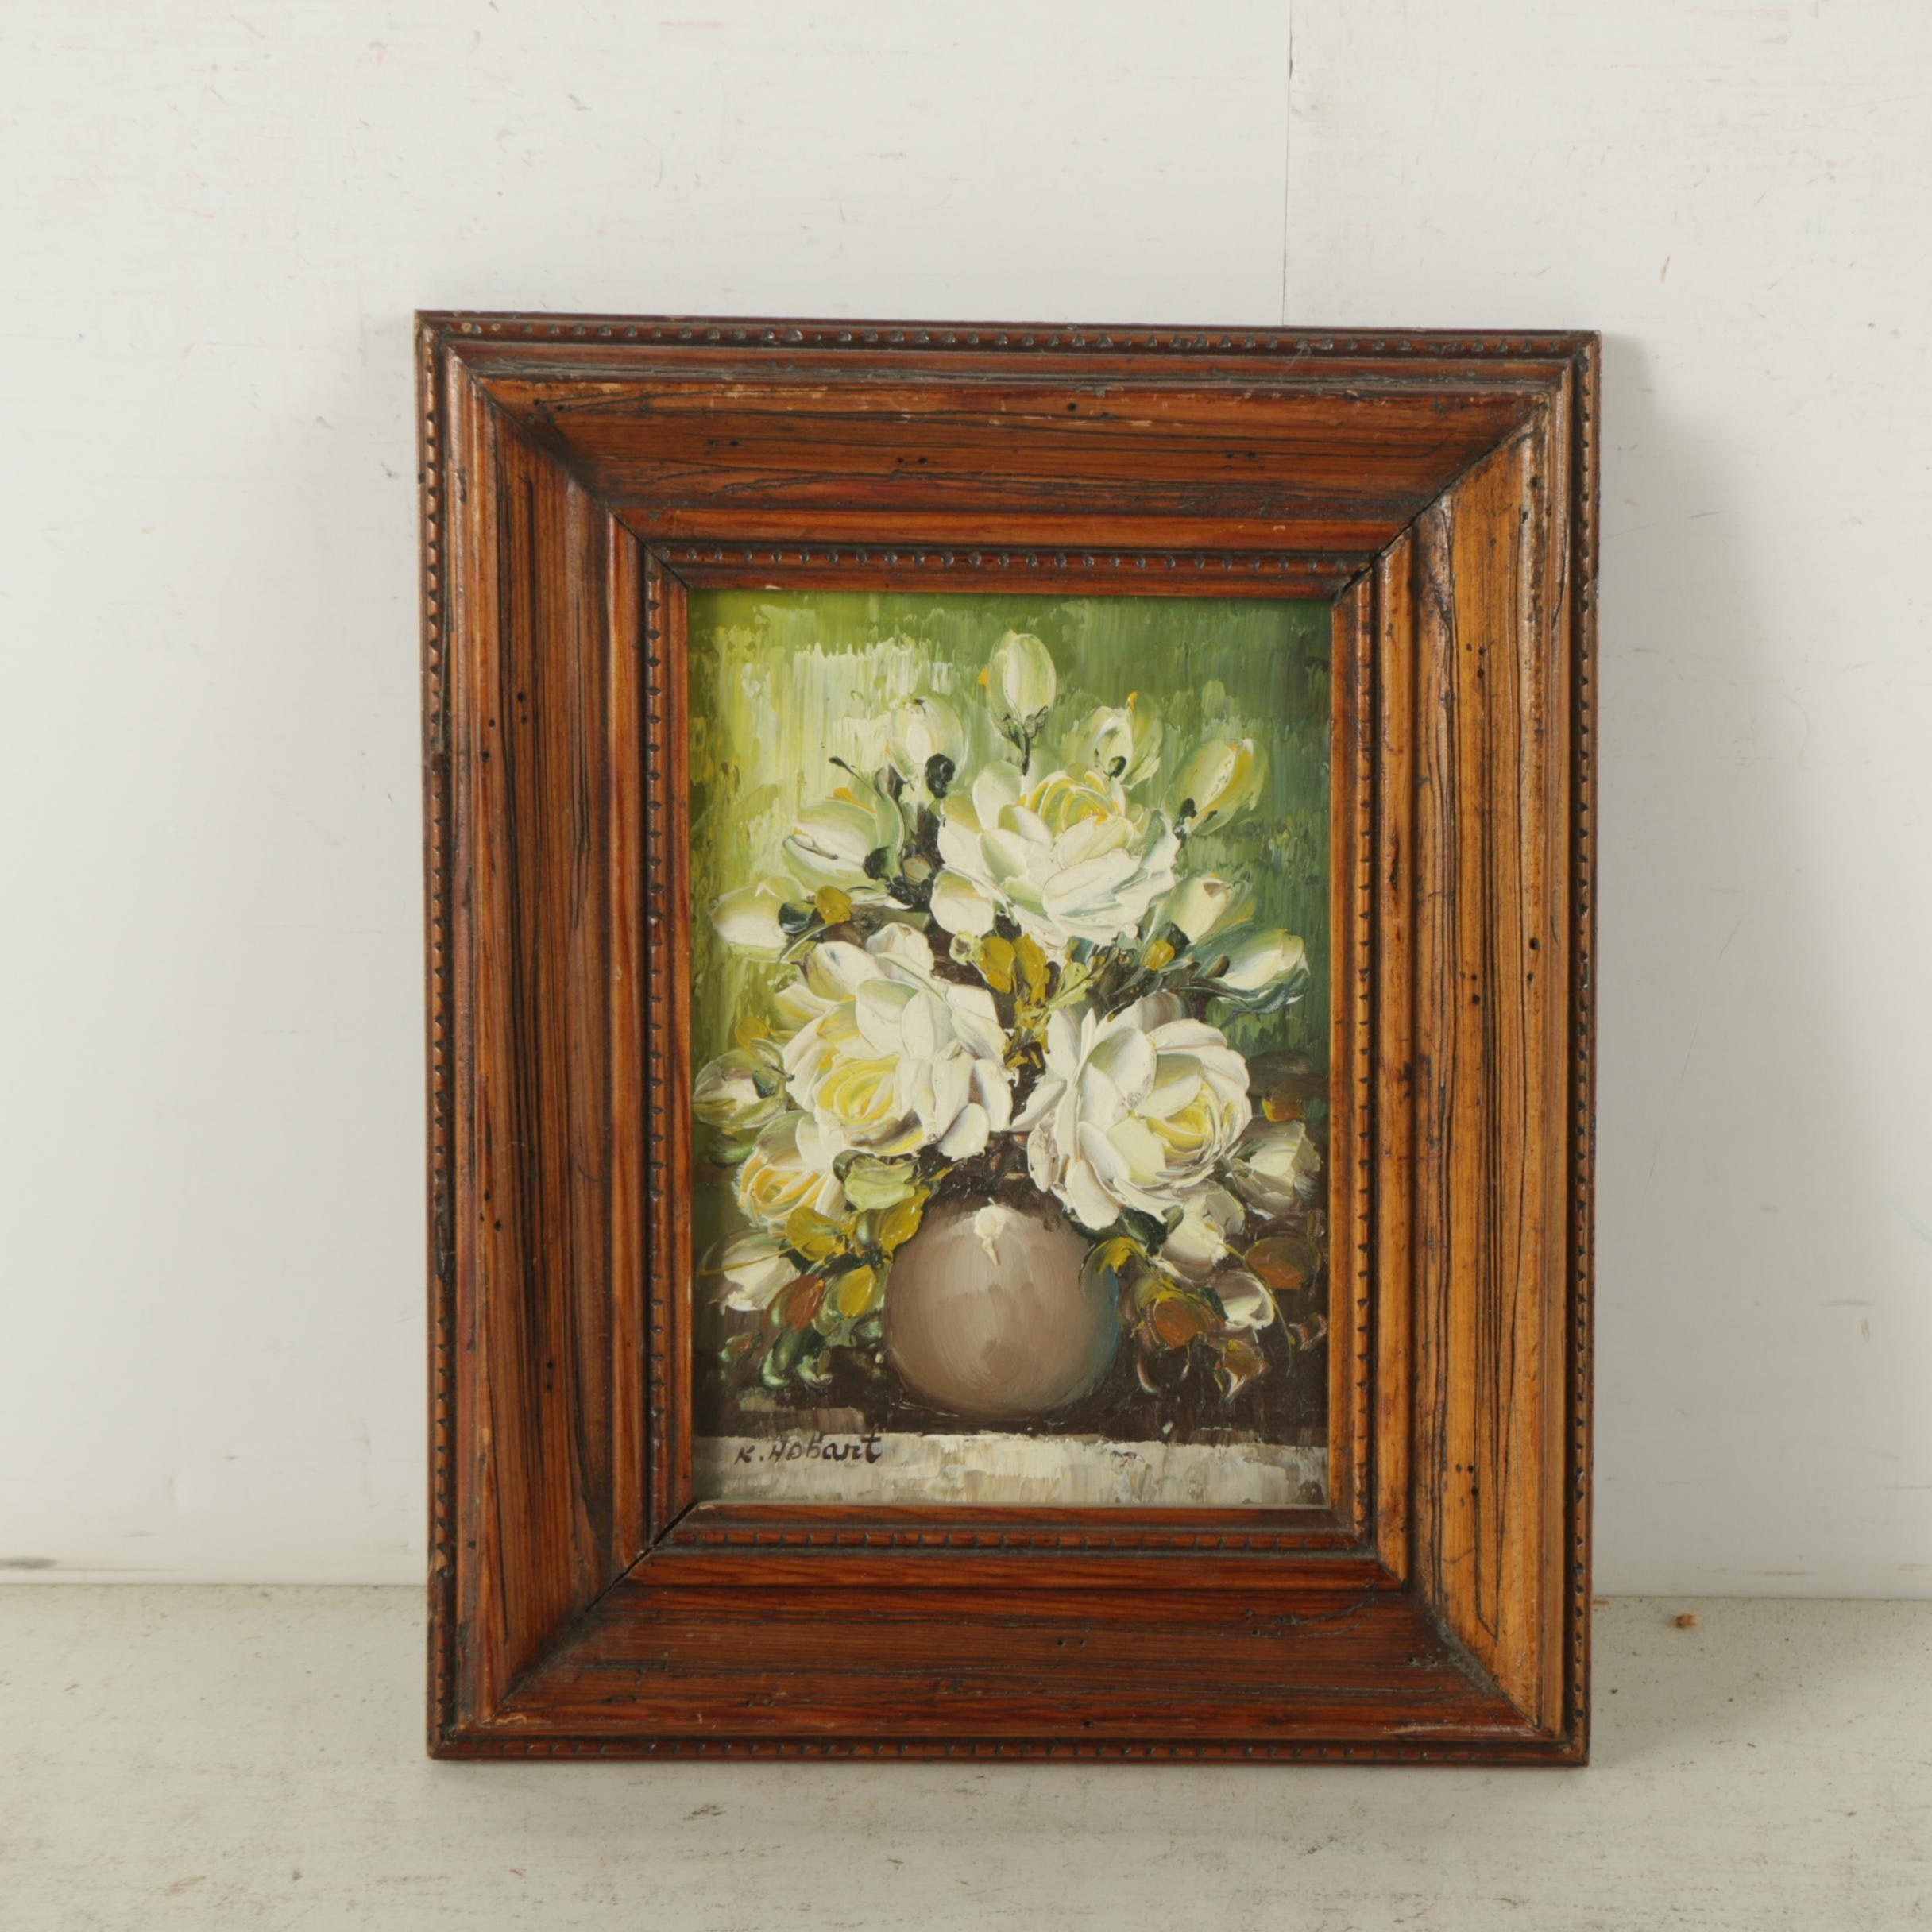 K. Hobart Oil Painting on Canvas Board of Still Life with Yellow Roses